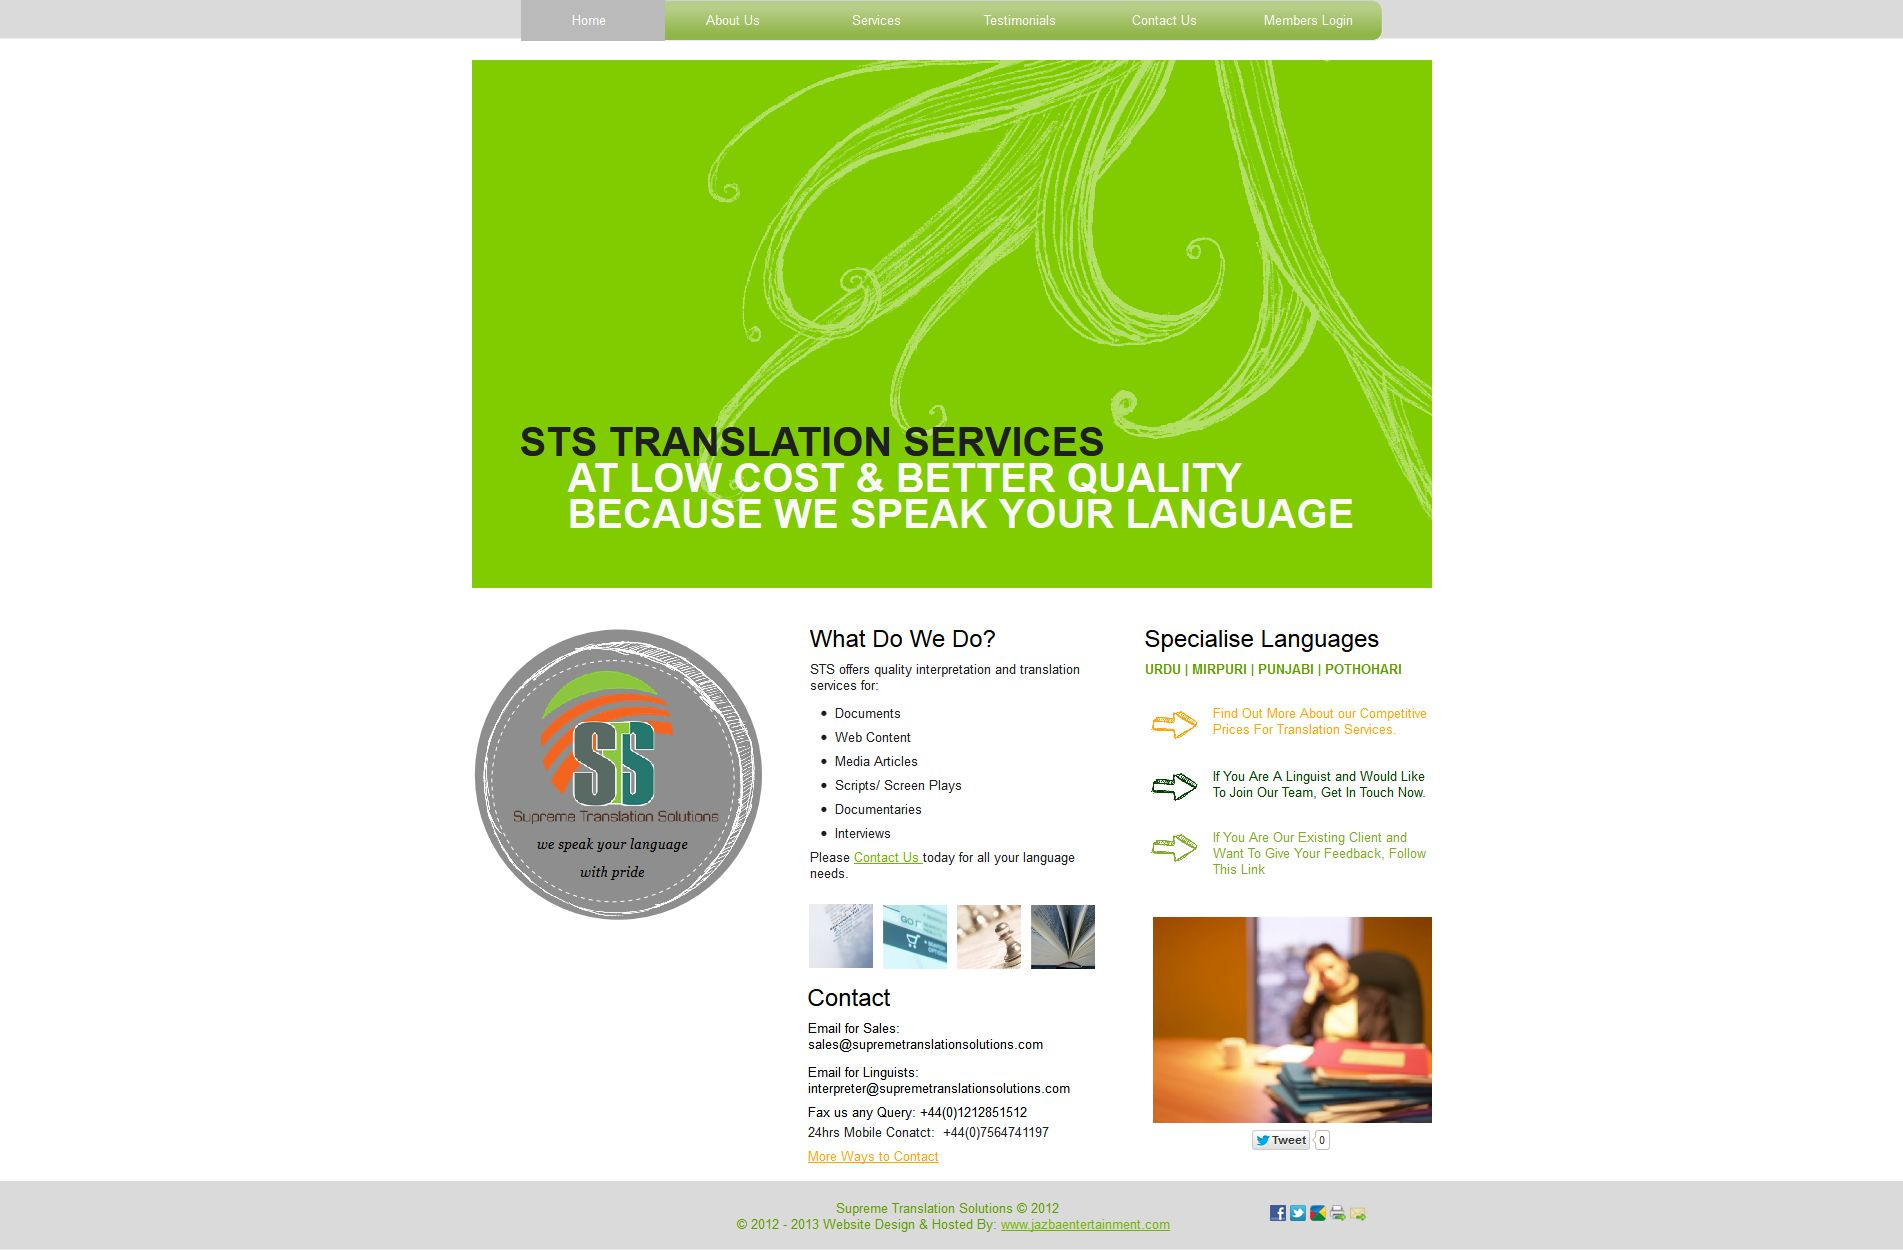 Supreme Translation Solutions